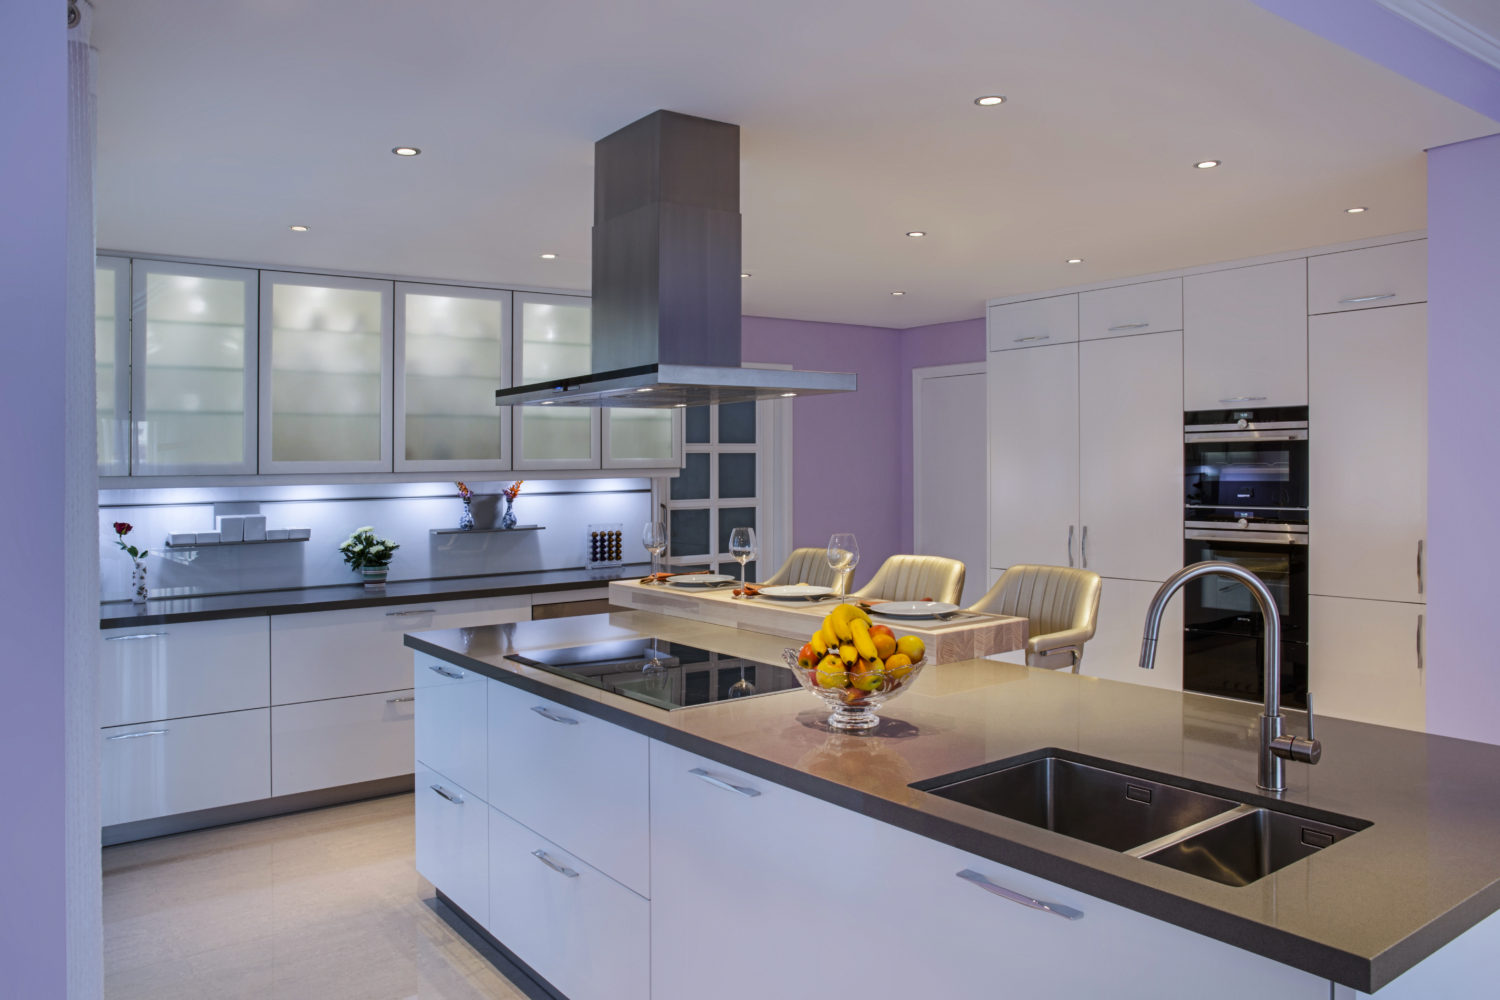 complete kitchen renovation in green community west - family villa